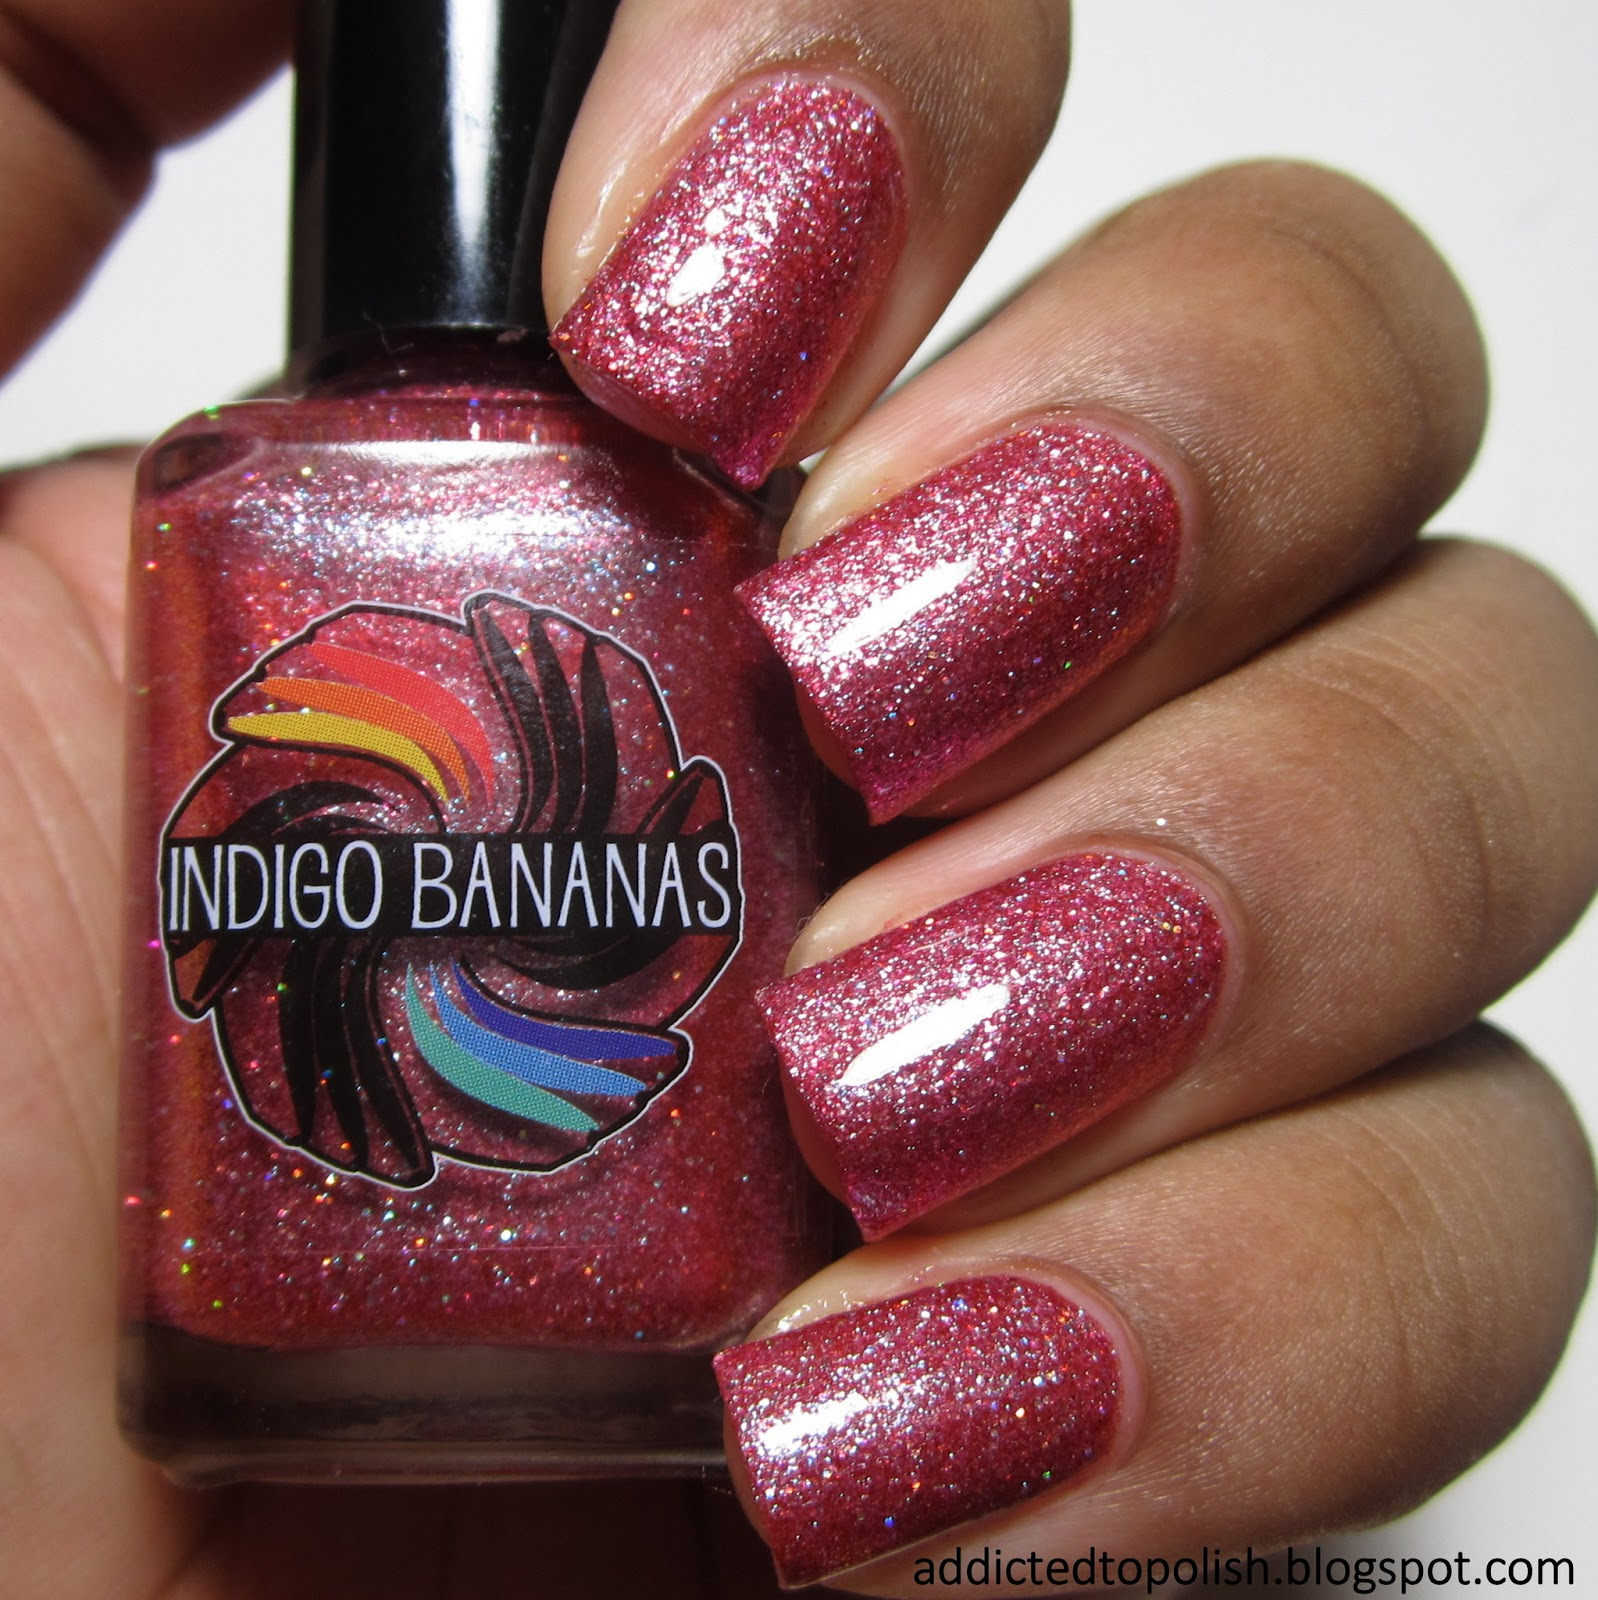 Indigo Bananas Abby Normal